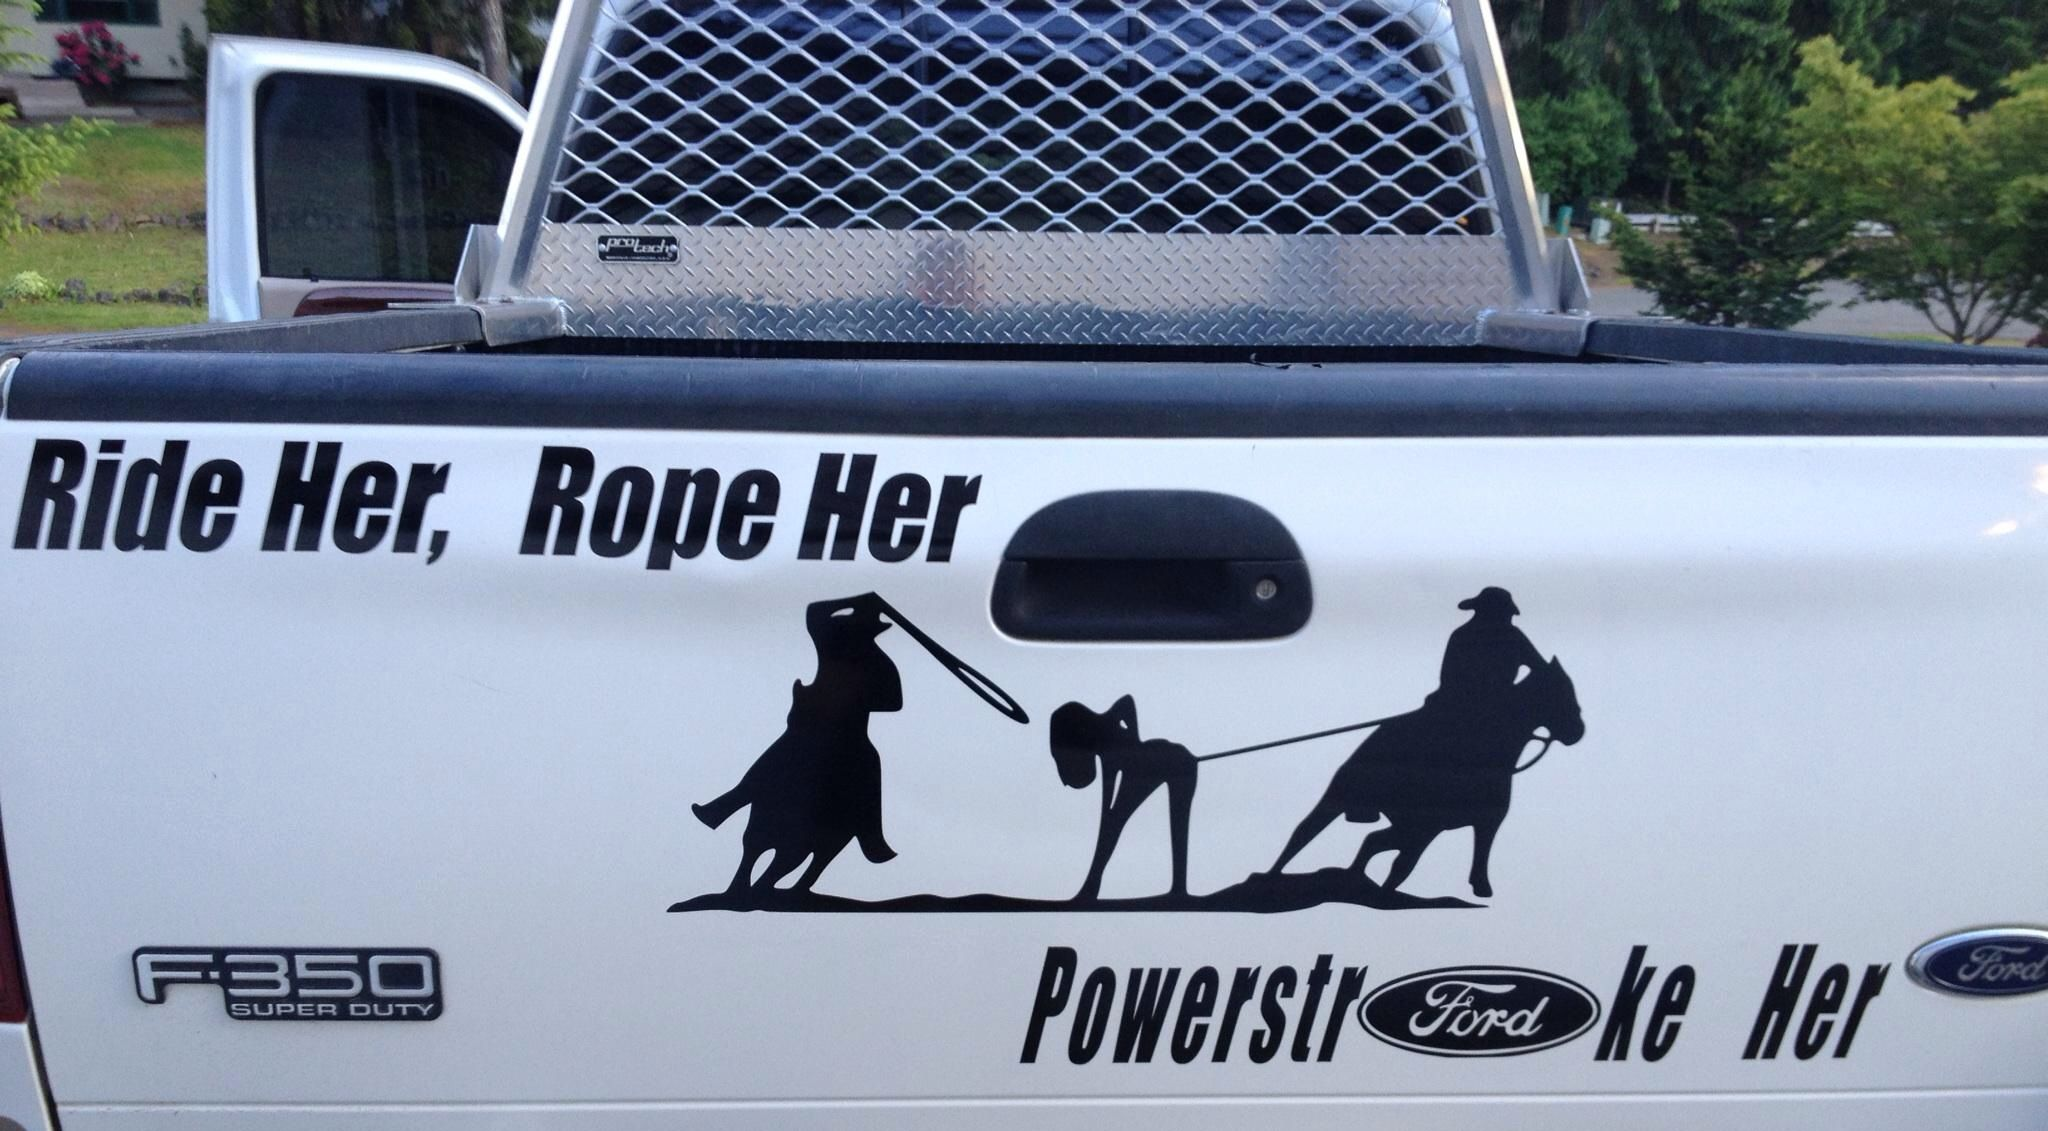 Ride her Rope her Powerstroke her ford logo vinyl decal